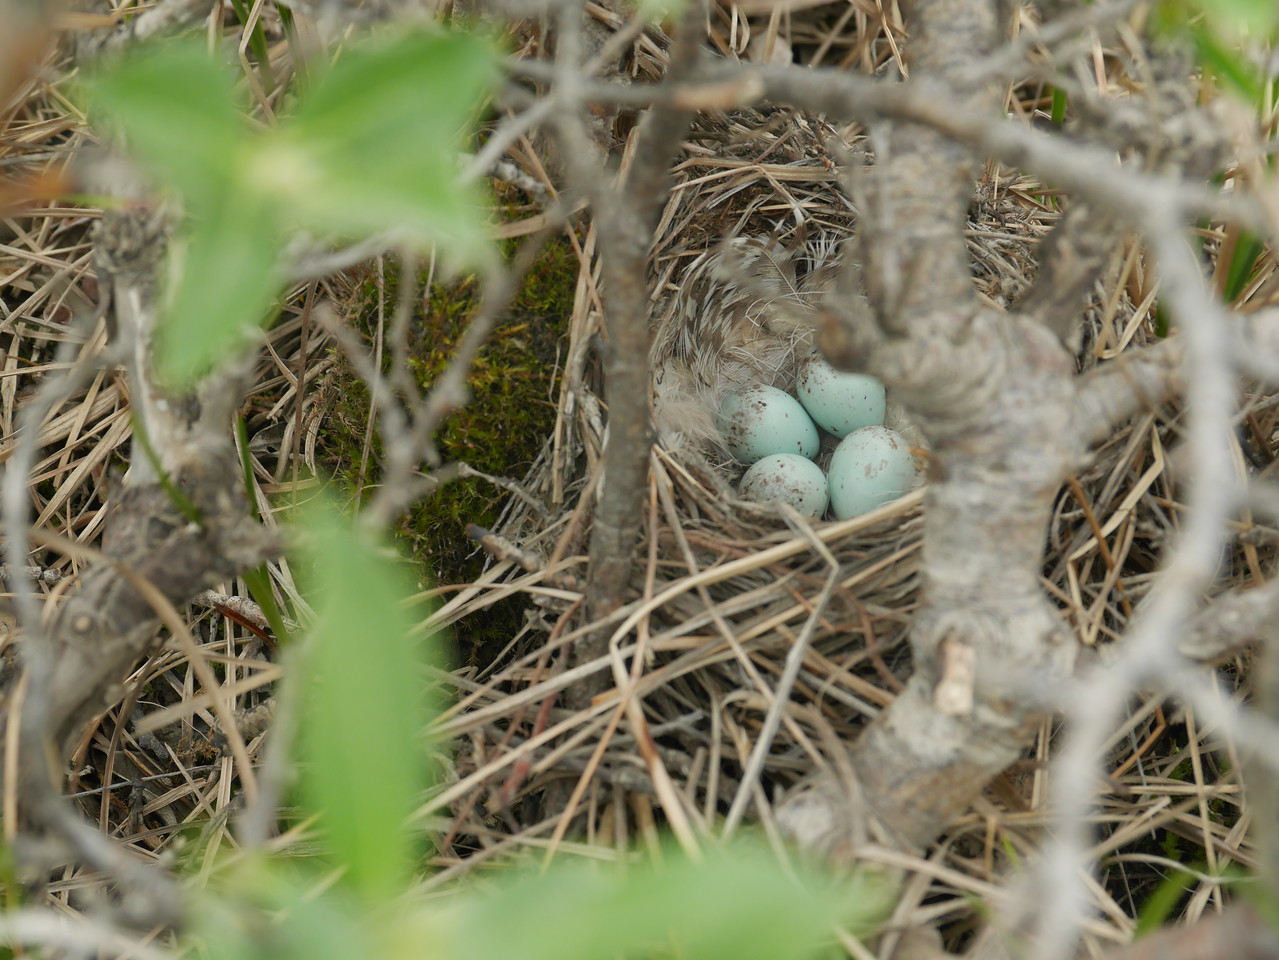 Savannah Sparrow eggs in nest